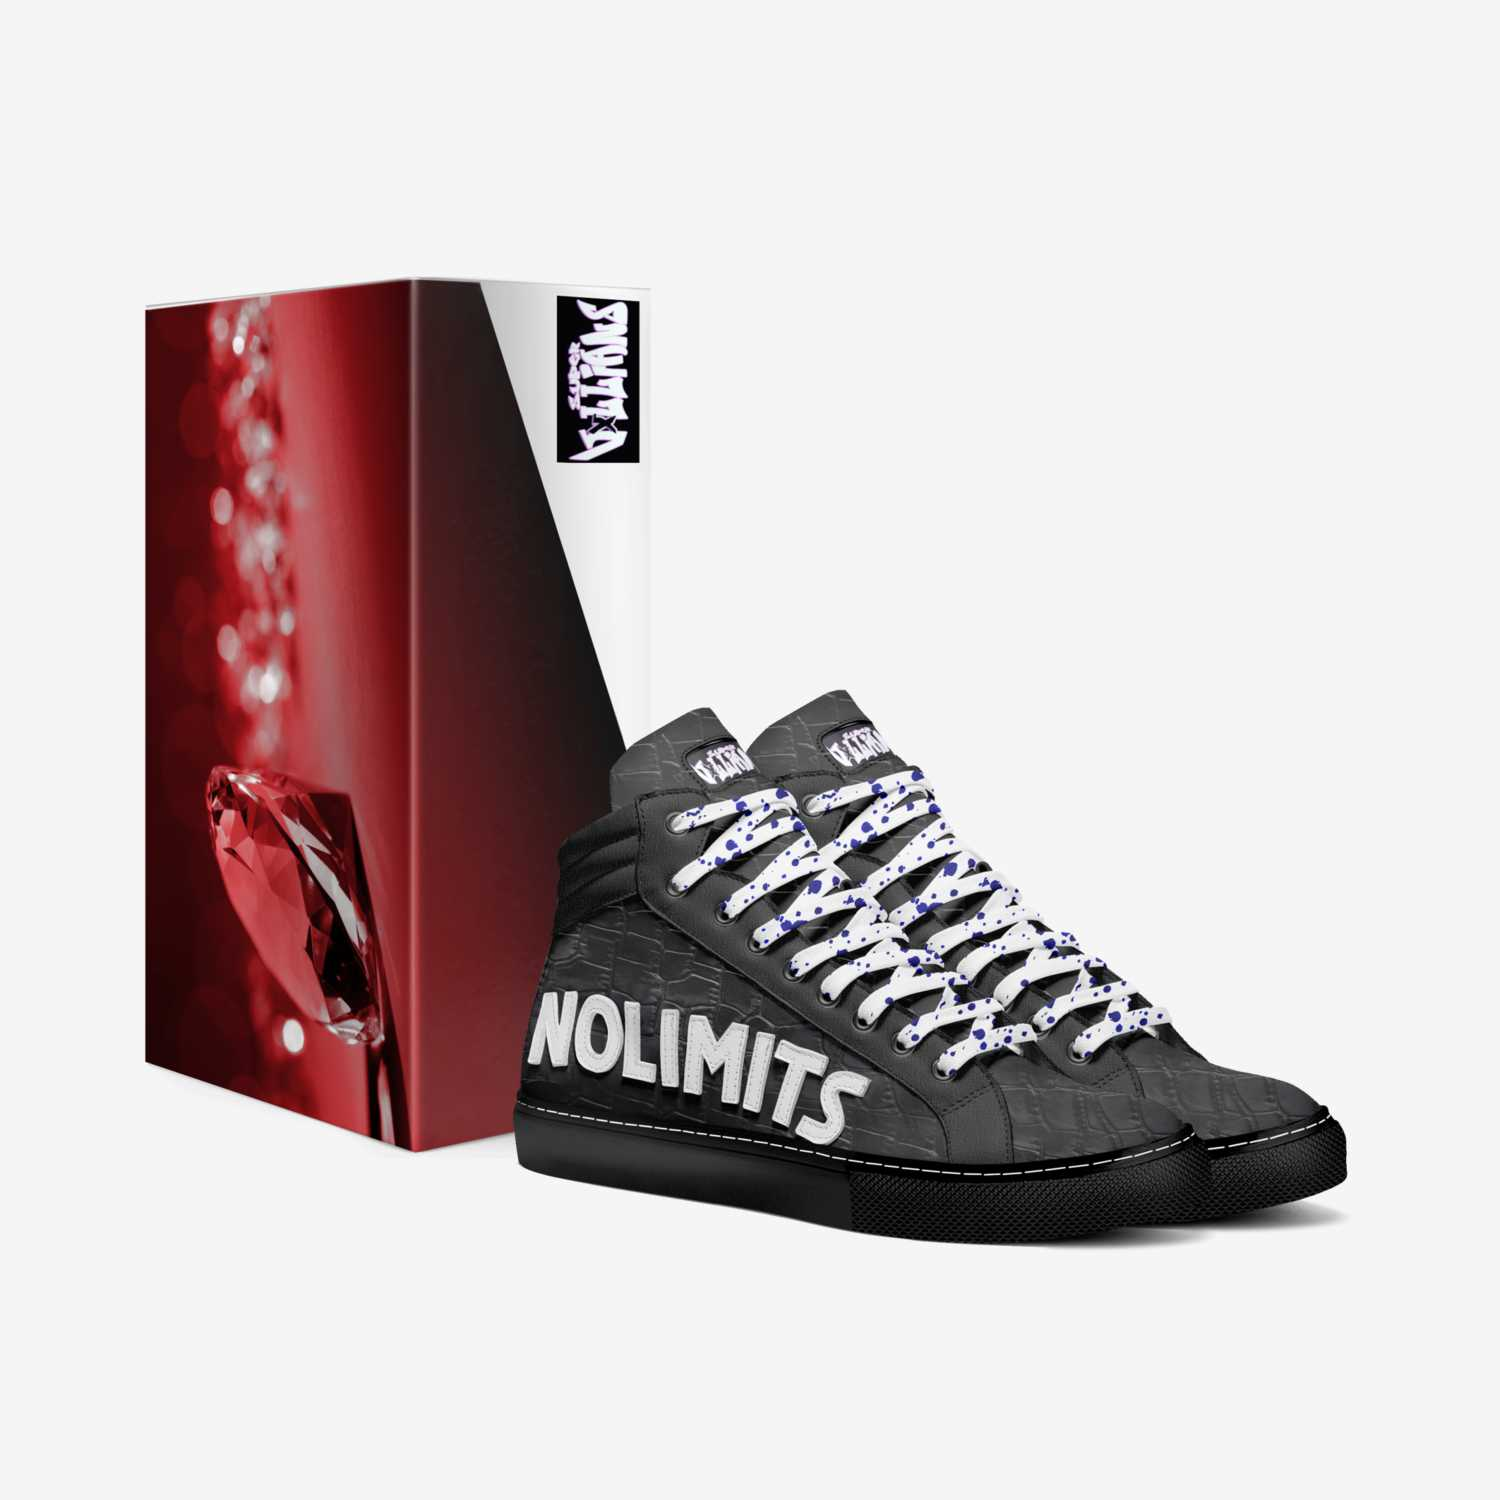 NL1 custom made in Italy shoes by Johnny Lopez | Box view